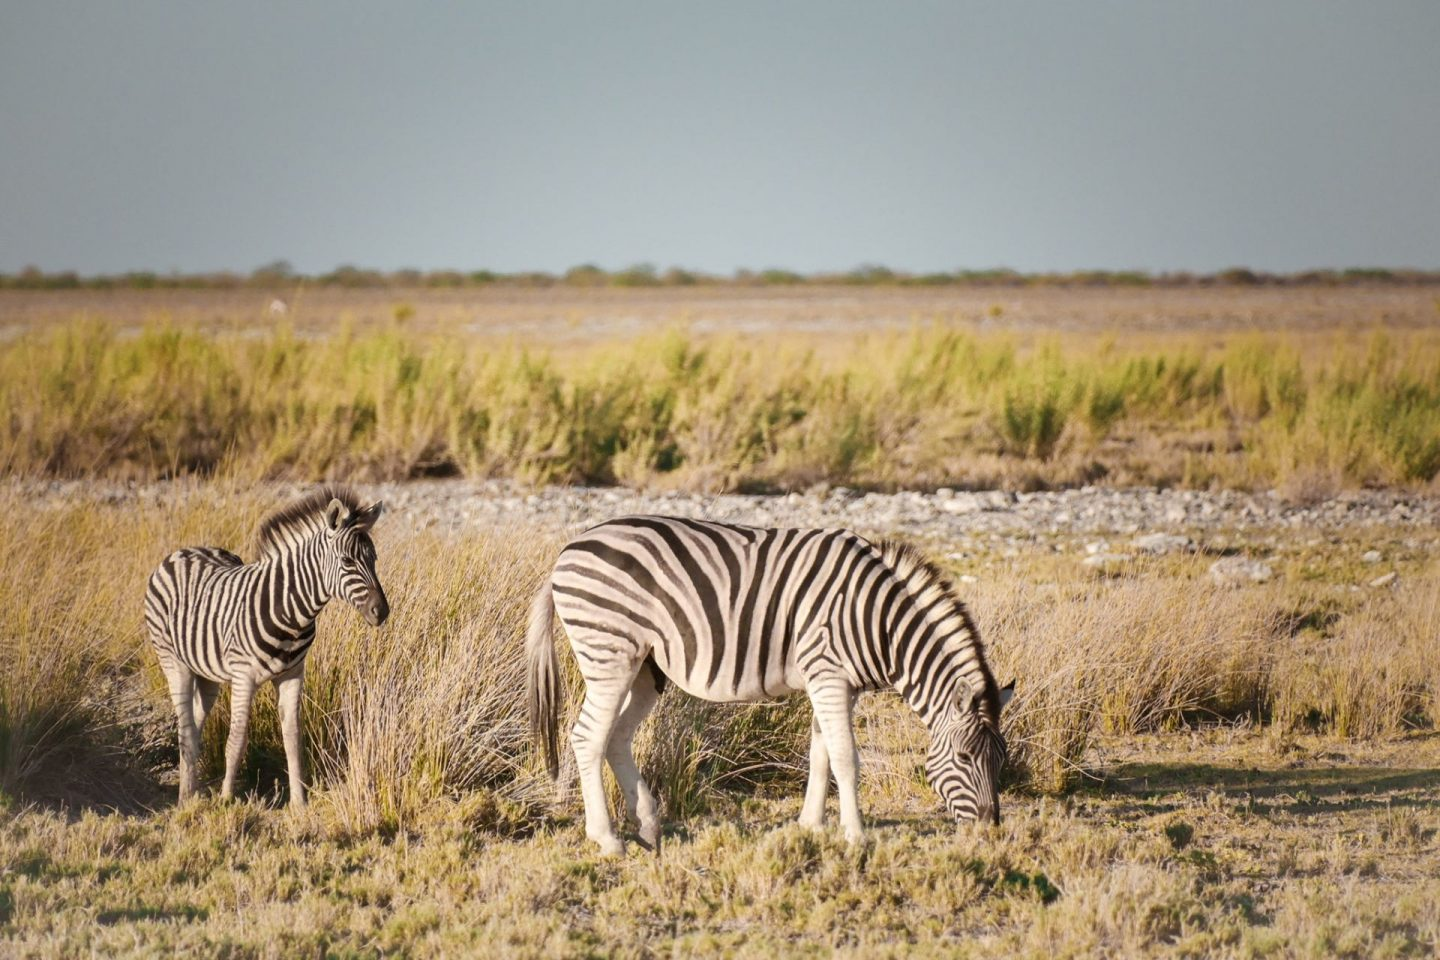 Zebras on Namibia self drive safari in Etosha National Park